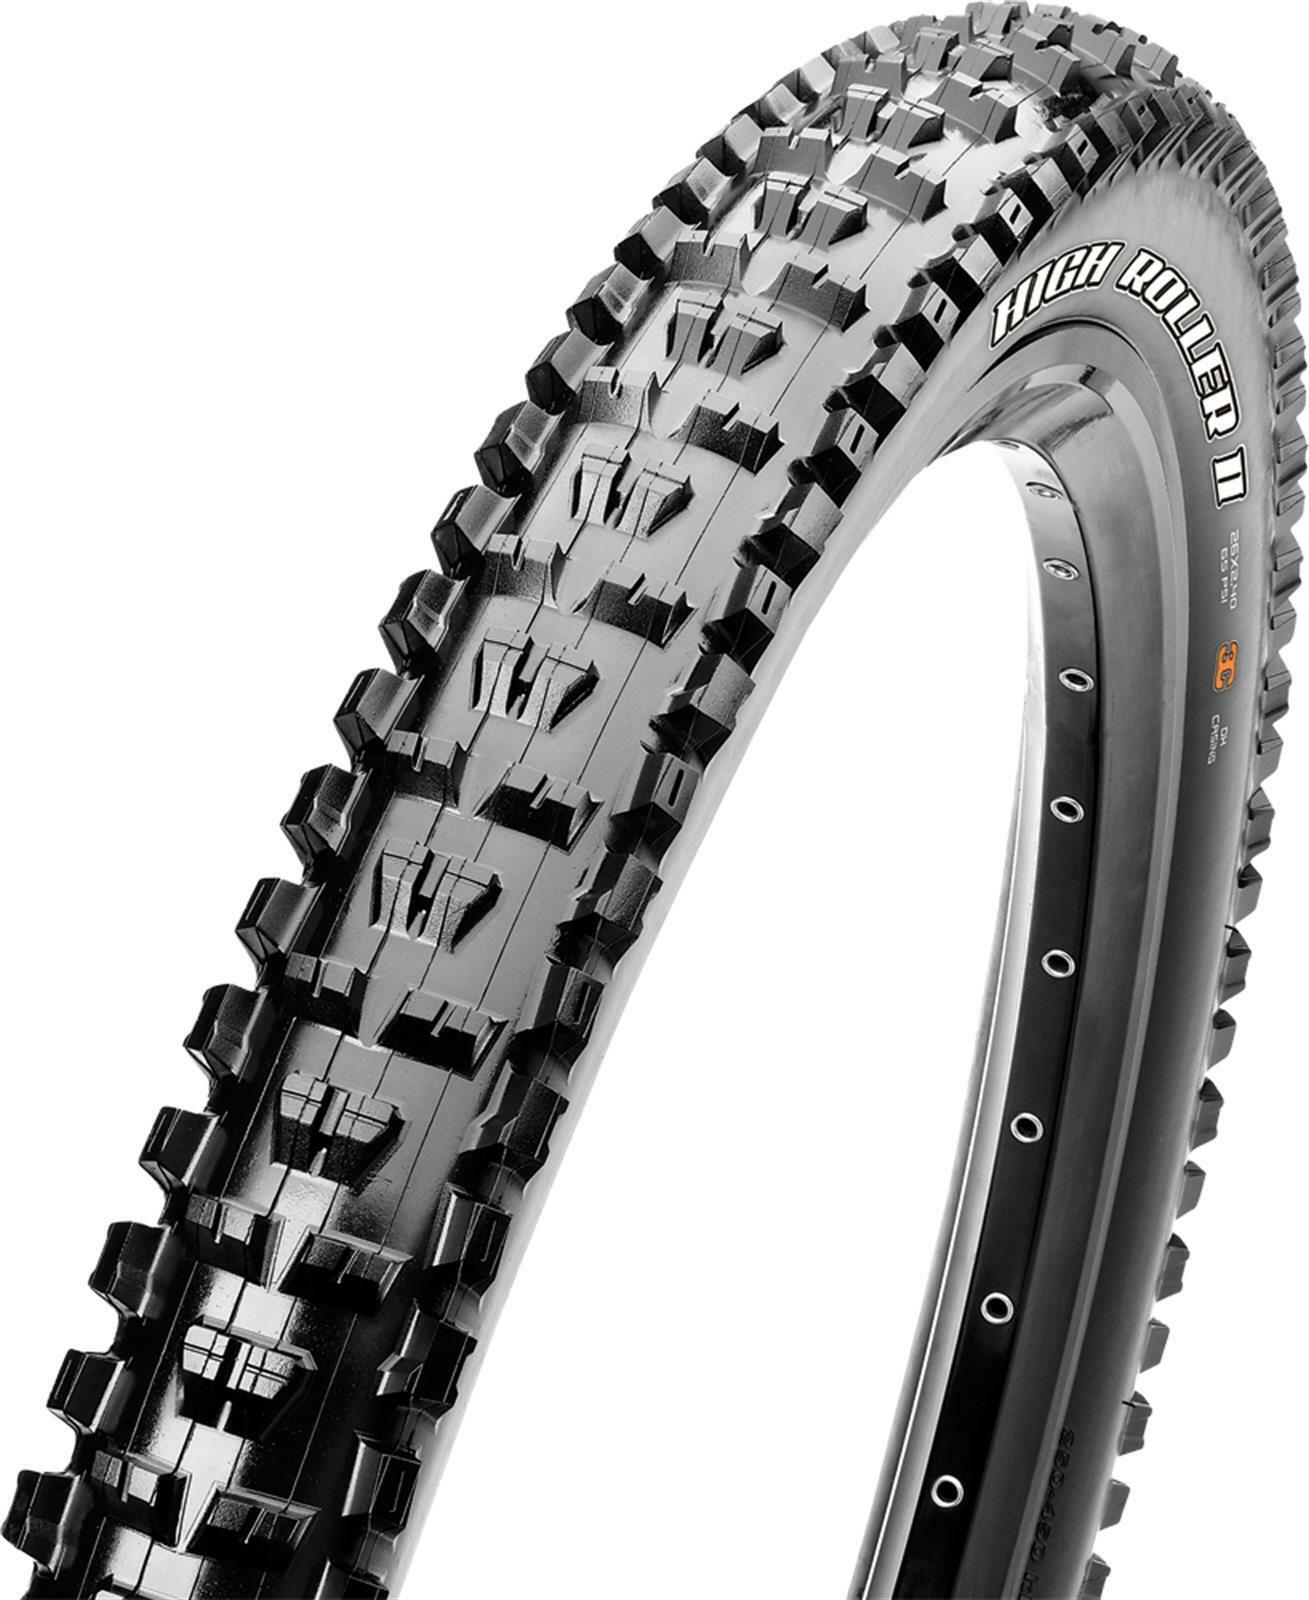 MAXXIS HIGH ROLLER II 26X2.40 WIRE SINGLE CMPD DH TB74177200